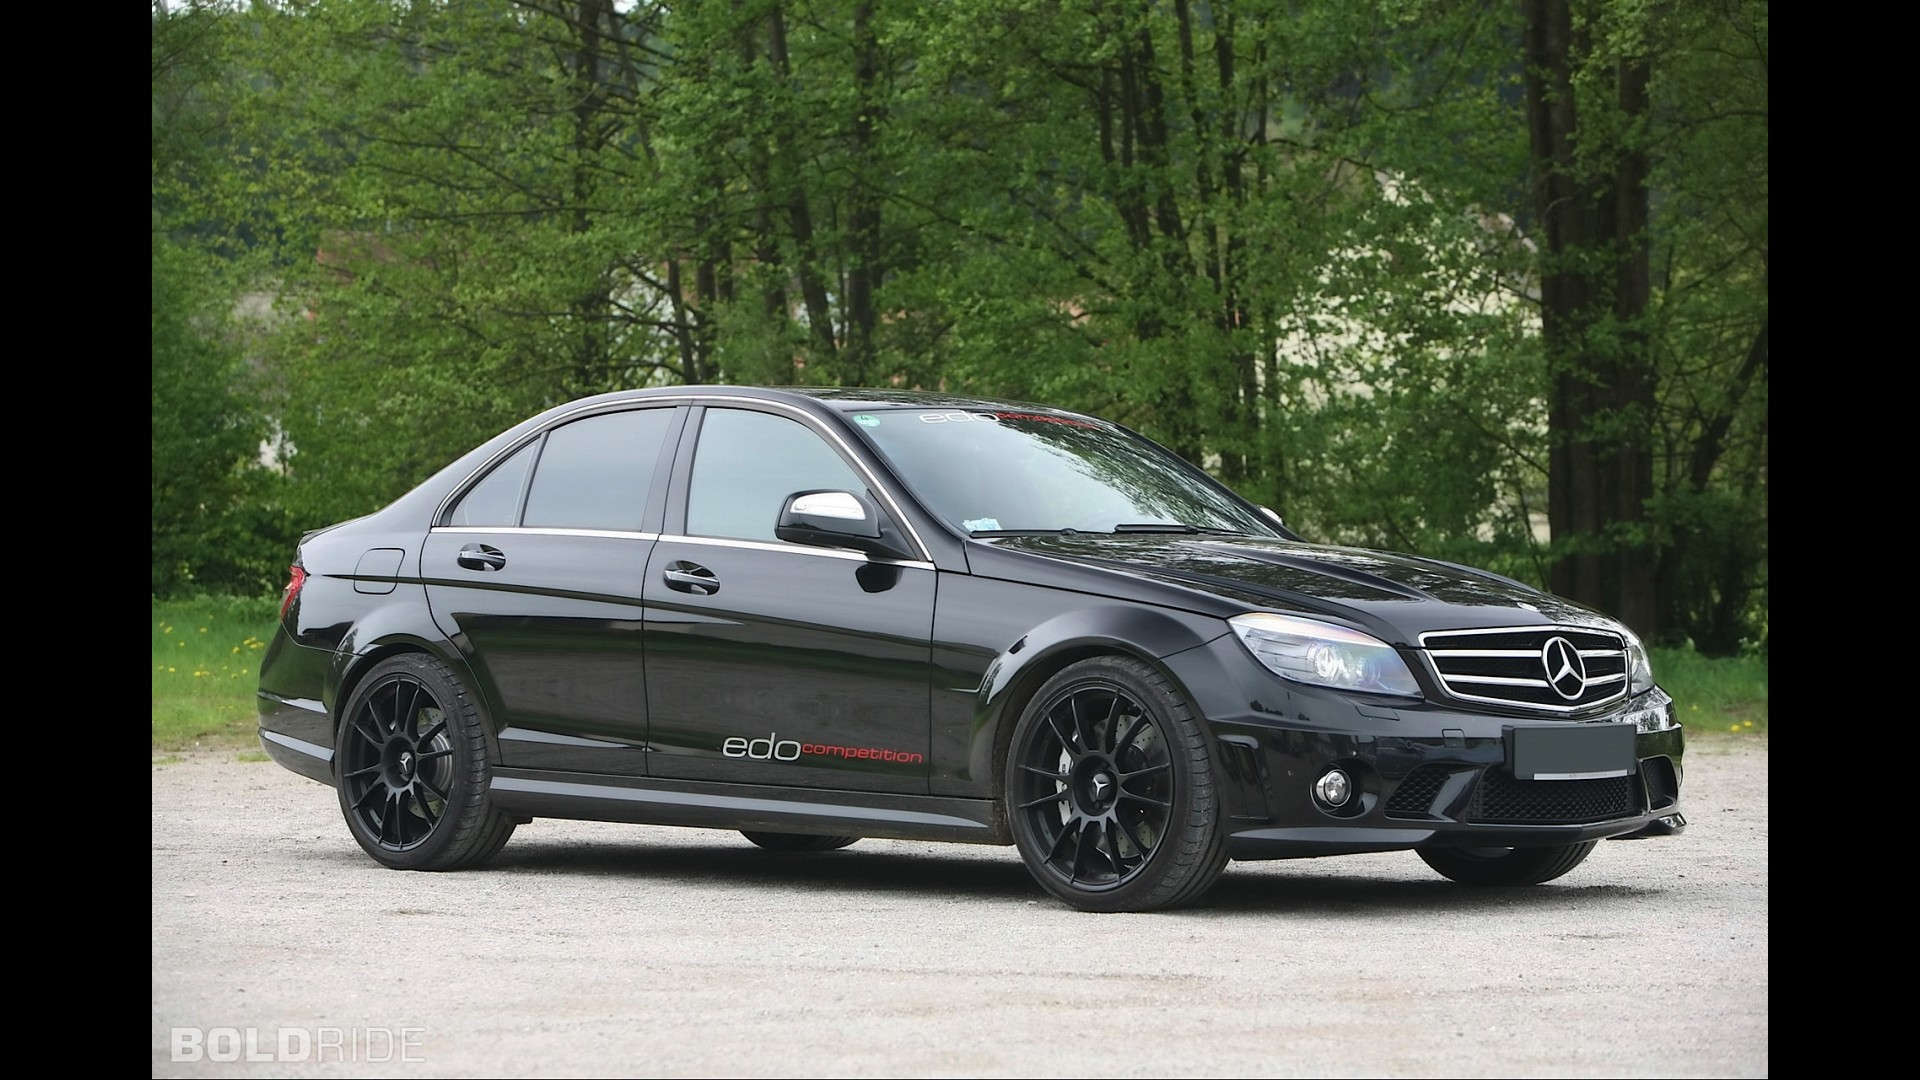 Edo Competition Mercedes-Benz C63 AMG